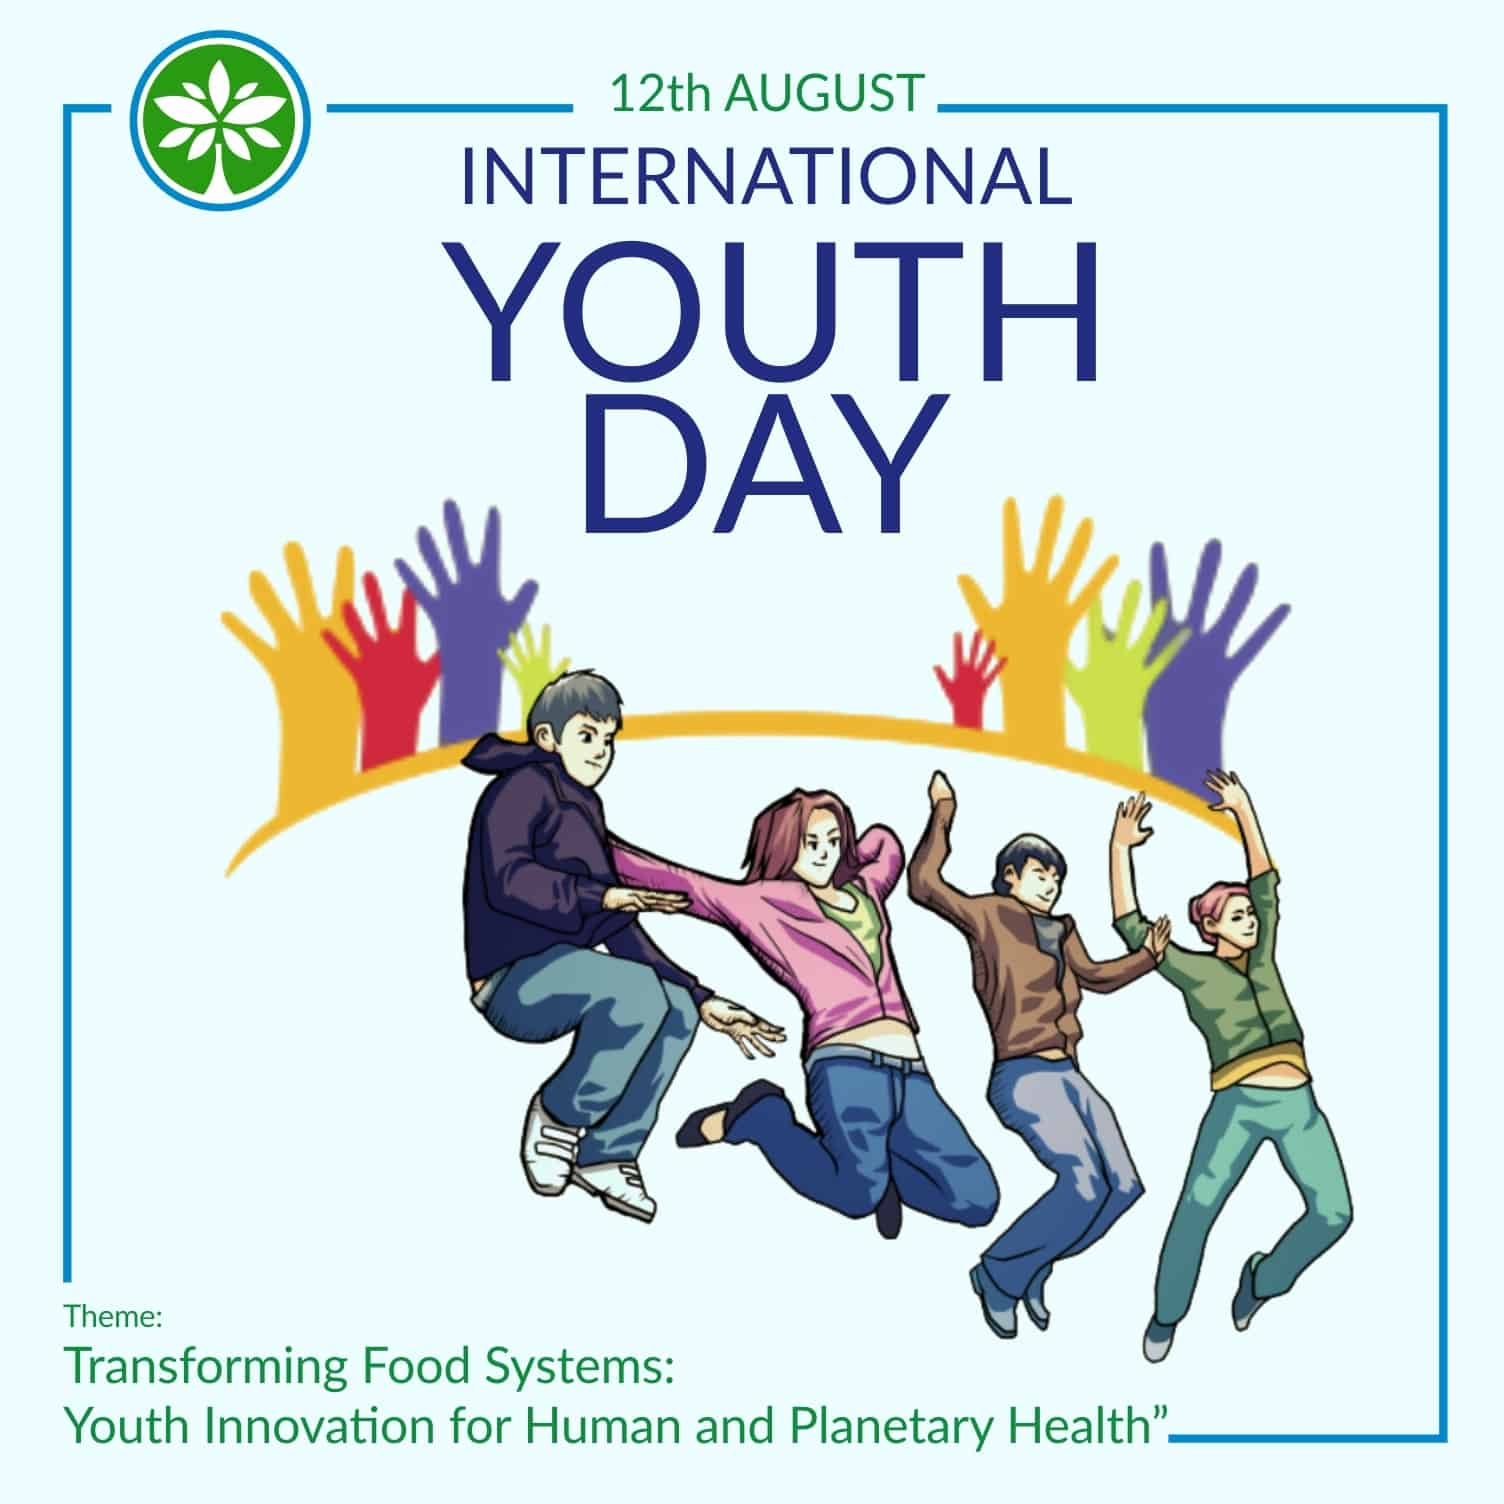 View Top Donors' List with Grant Opportunities for NGOs on this International Youth Day